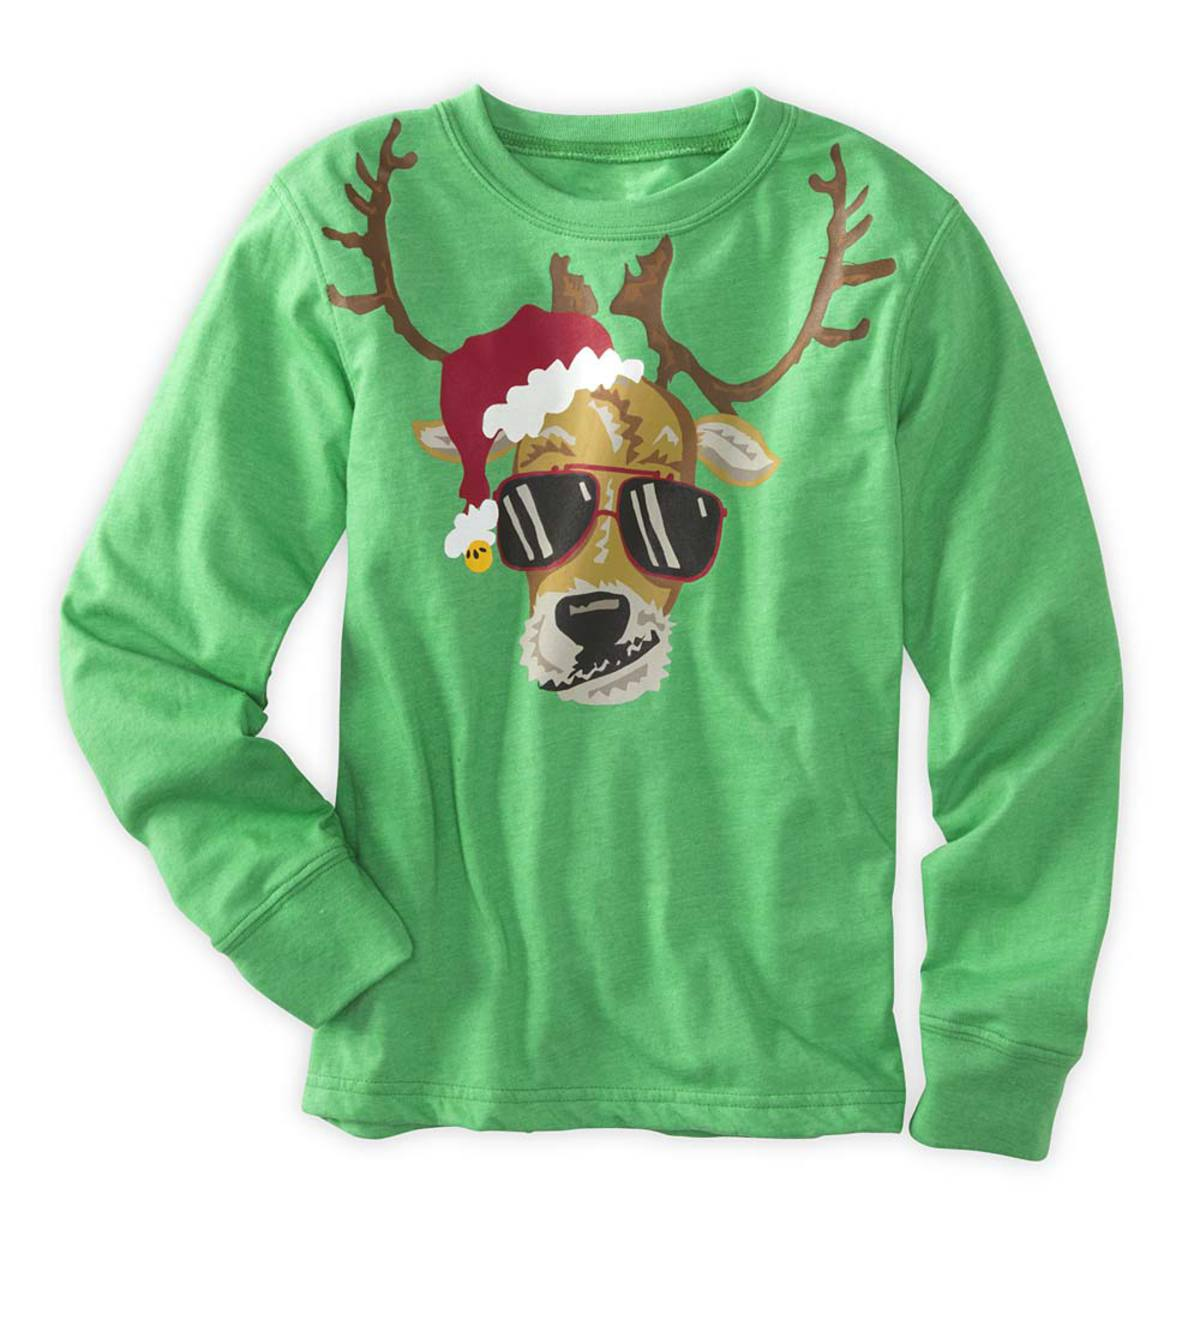 Cool Reindeer Tee - Green - 7